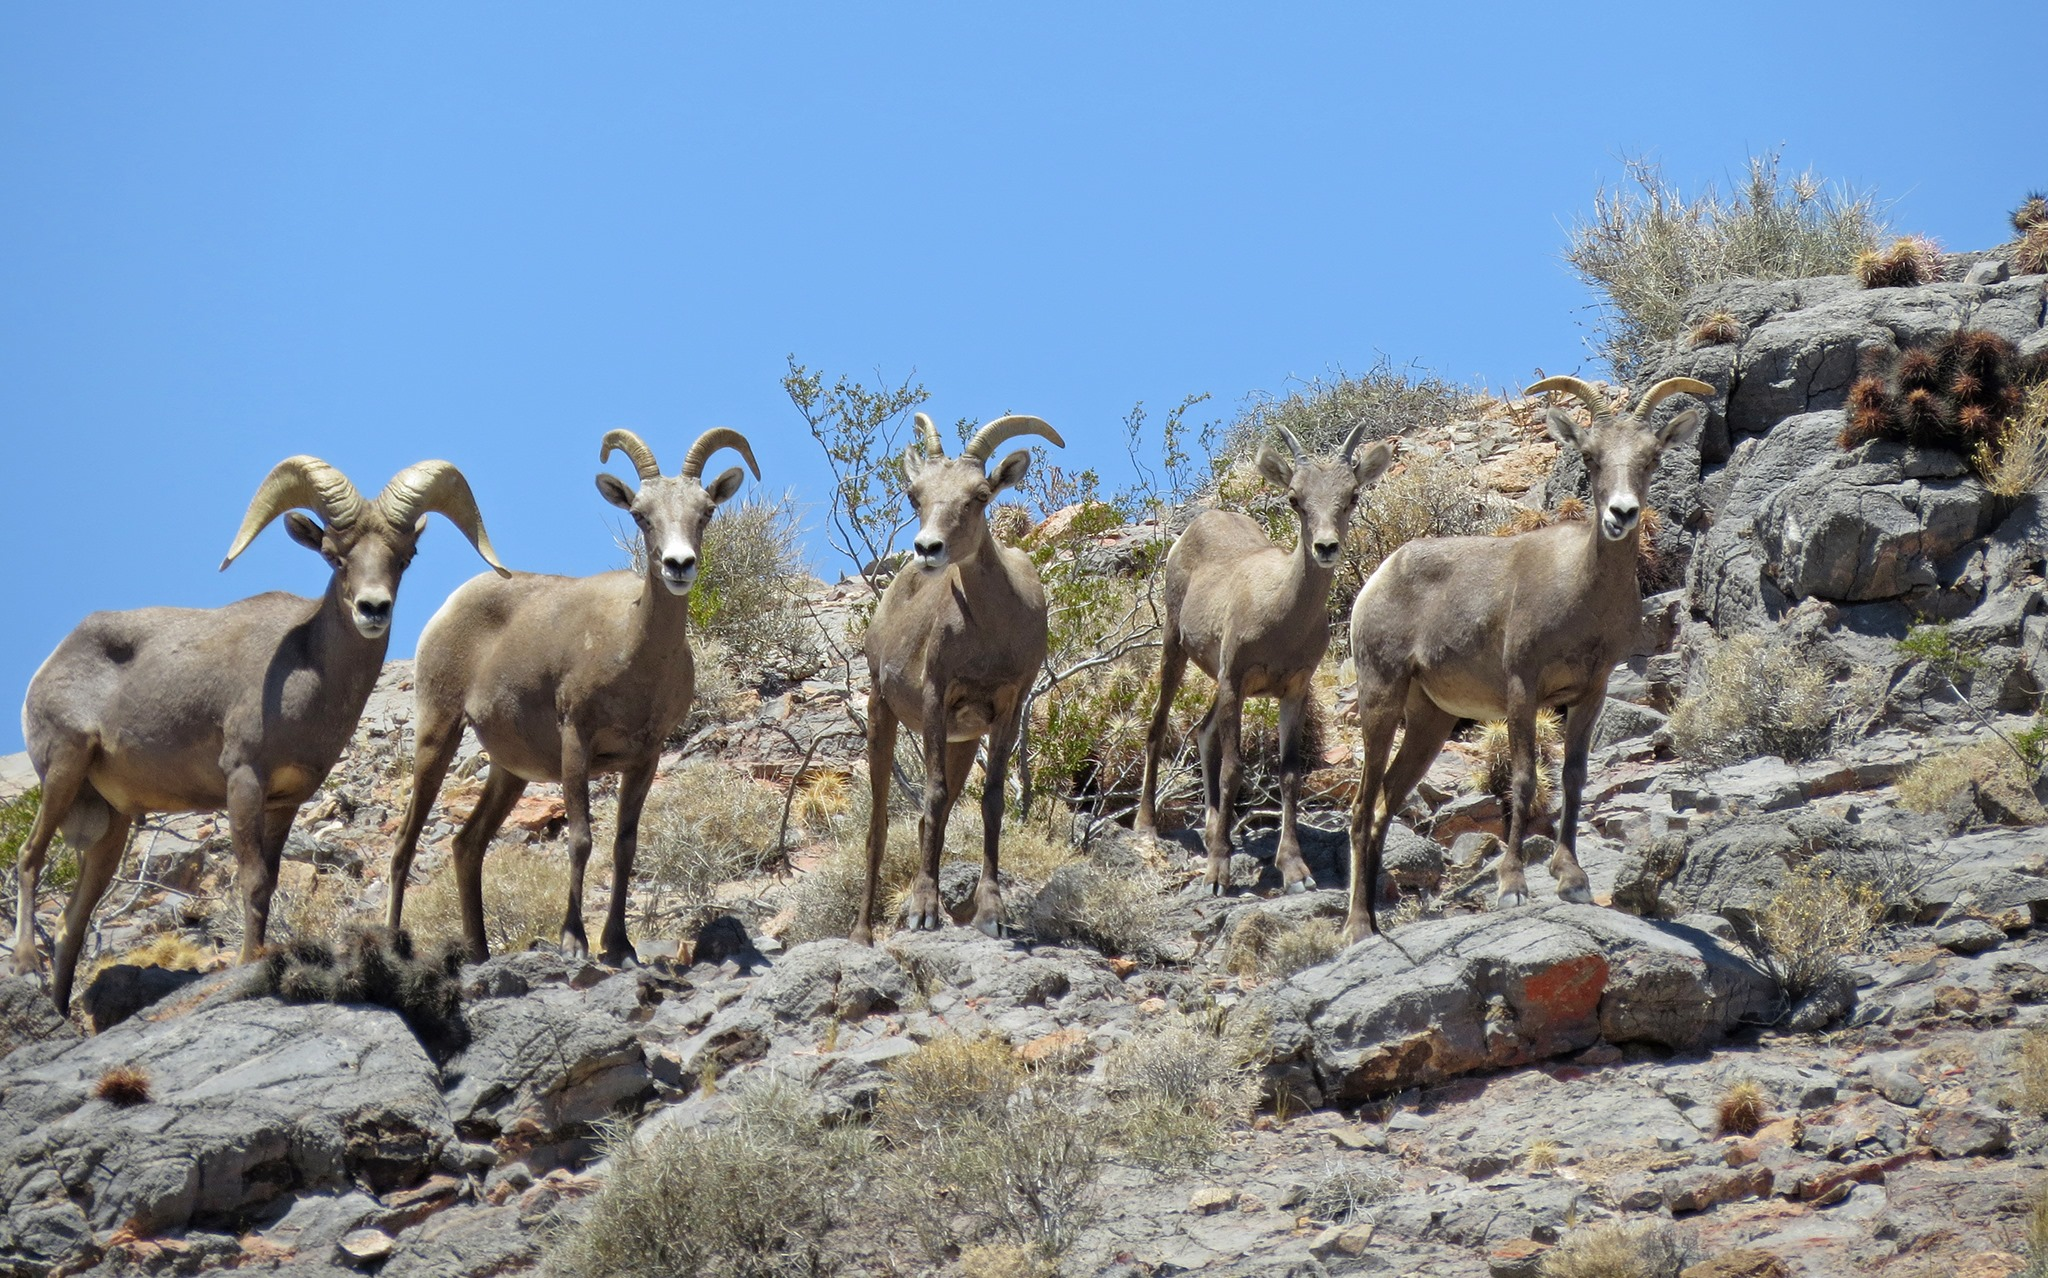 Ash Meadows NWR · August 1 · Edited ·    Thirteen bighorn sheep were spotted at Point of Rocks earlier today! These hardy desert dwellers live year-round in our area but are only occasionally seen. In the summer months at Ash Meadows, bi.jpg